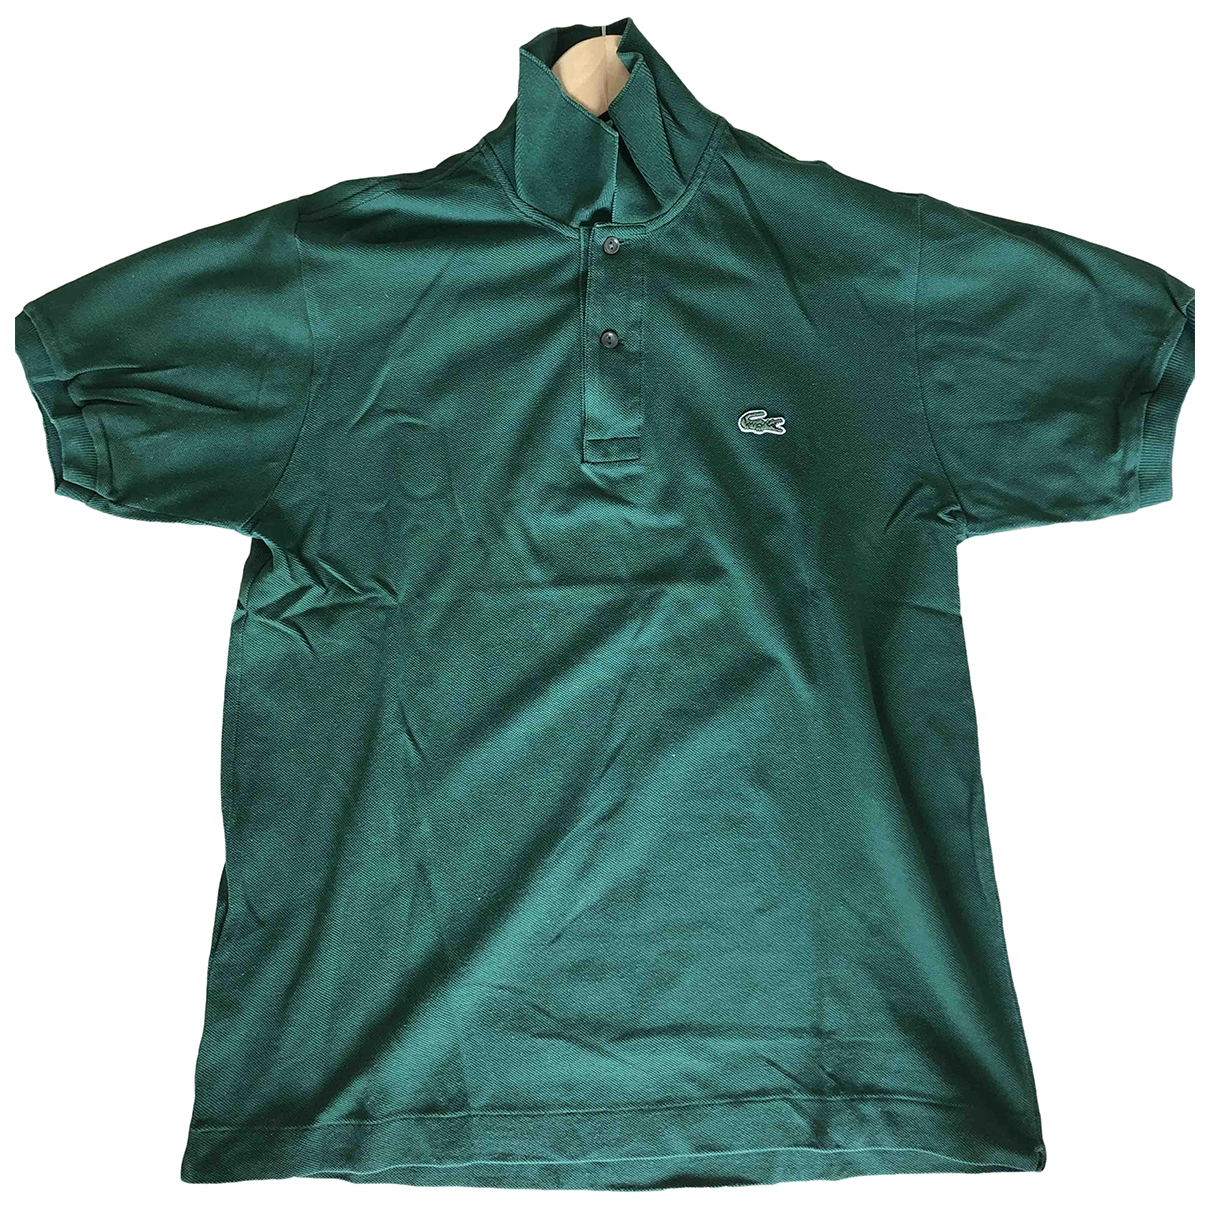 Lacoste \N Green Cotton Polo shirts for Men 3 0 - 6